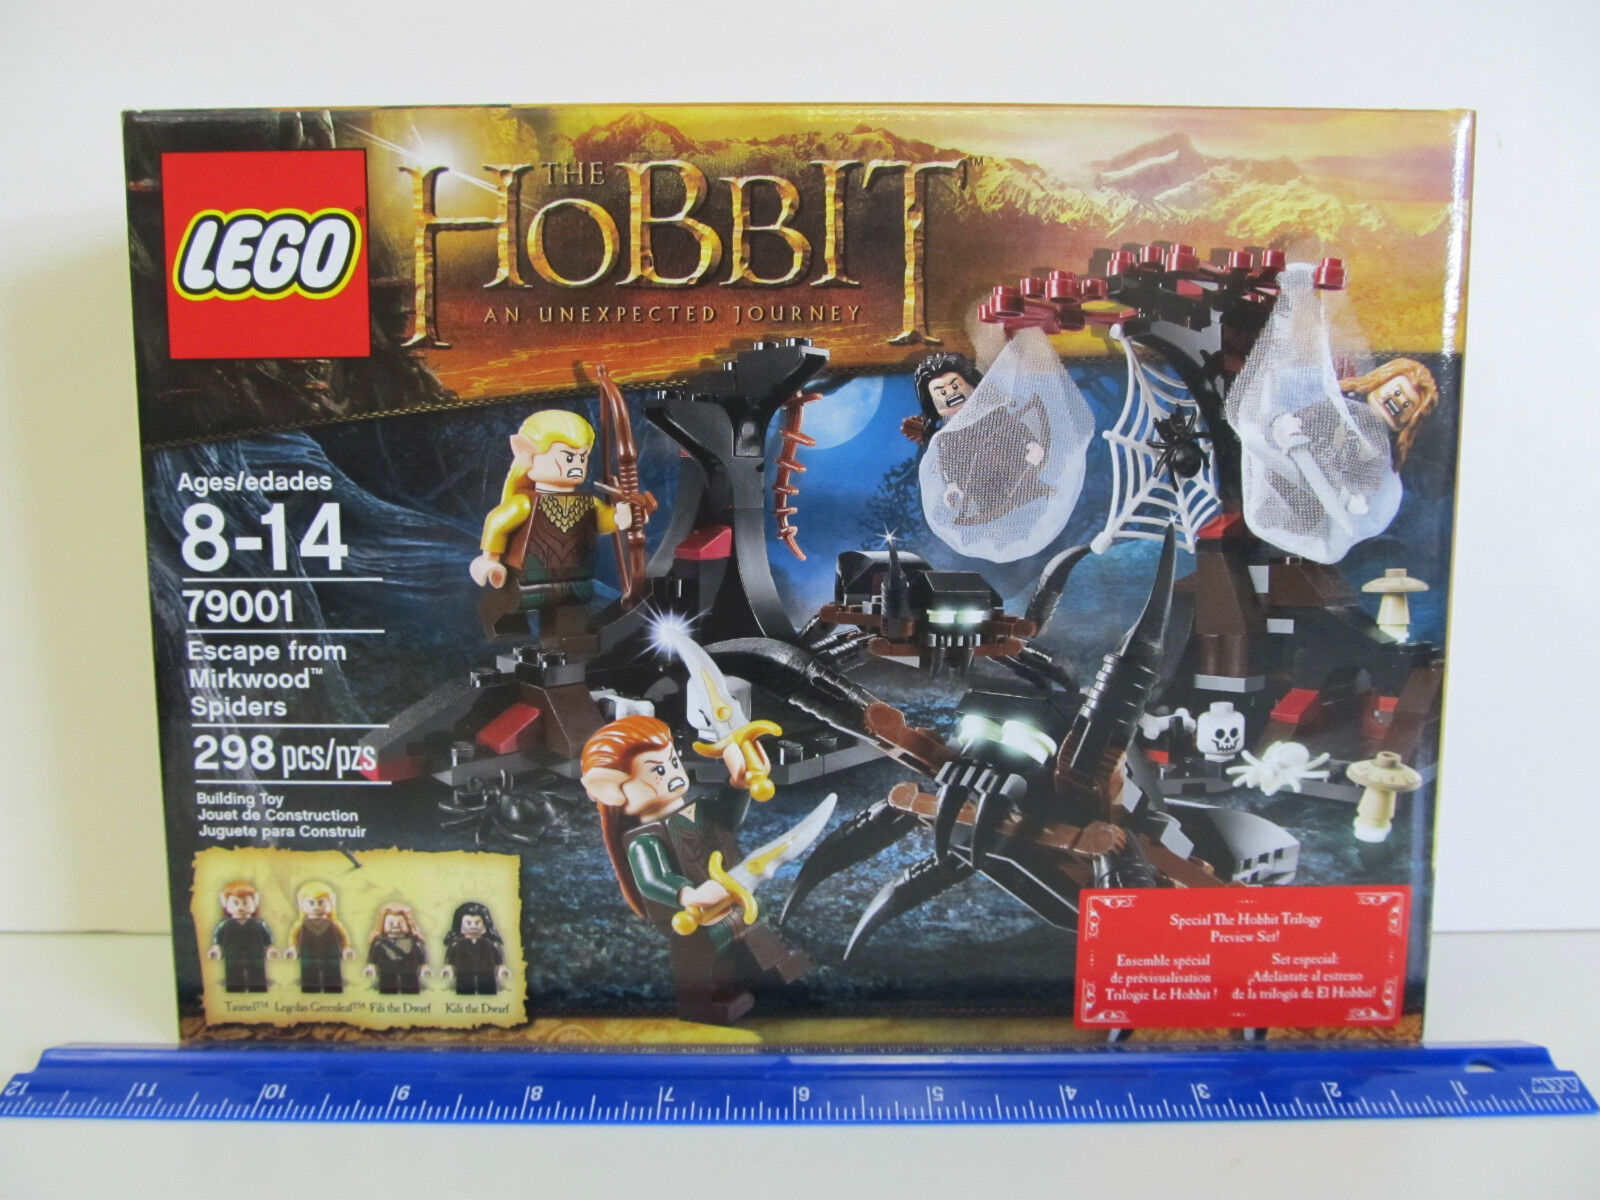 The Hobbit Lego 79001 - Escape from Mirkwood Spiders - 298 pc set - Age 8-14 yrs